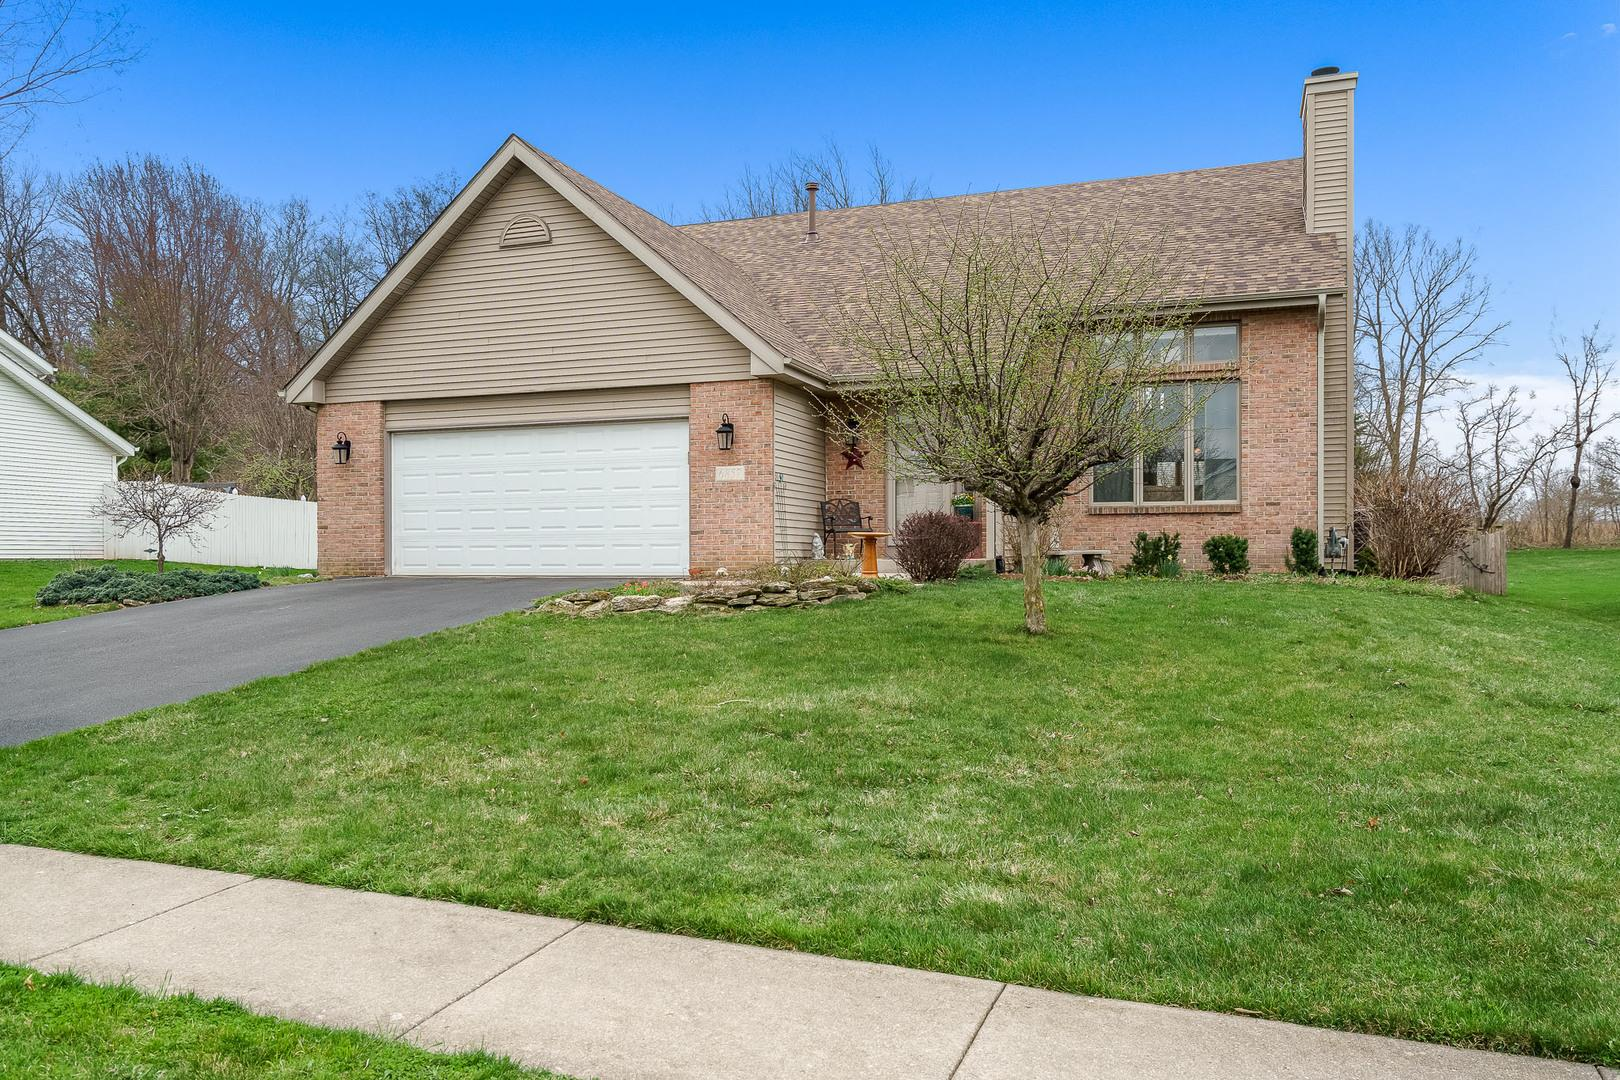 6857 Butterfield Drive, Cherry Valley, IL 61016 - #: 11047960